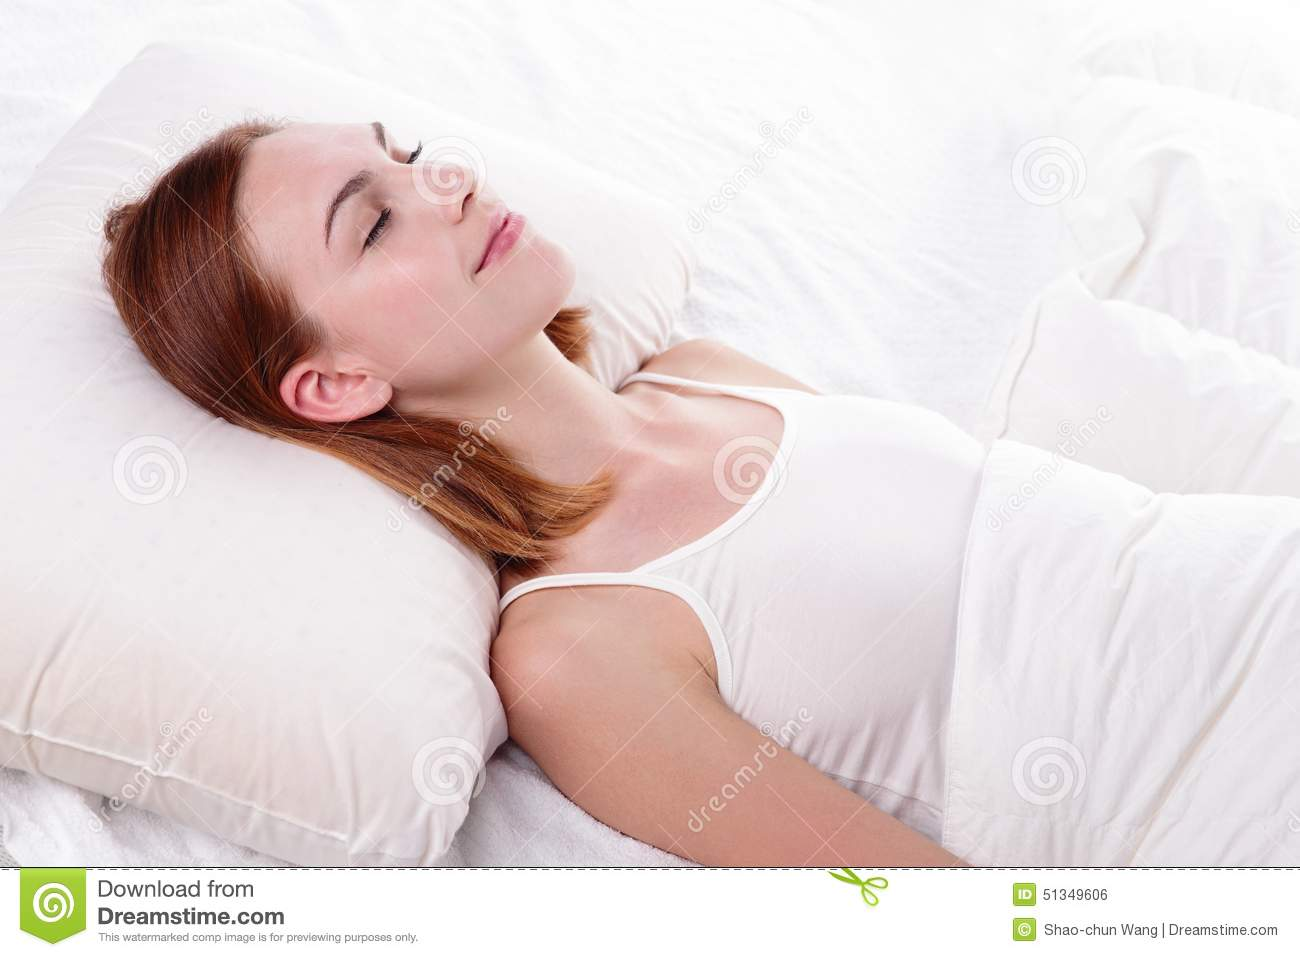 Clinic States That Teen Sleeping 75